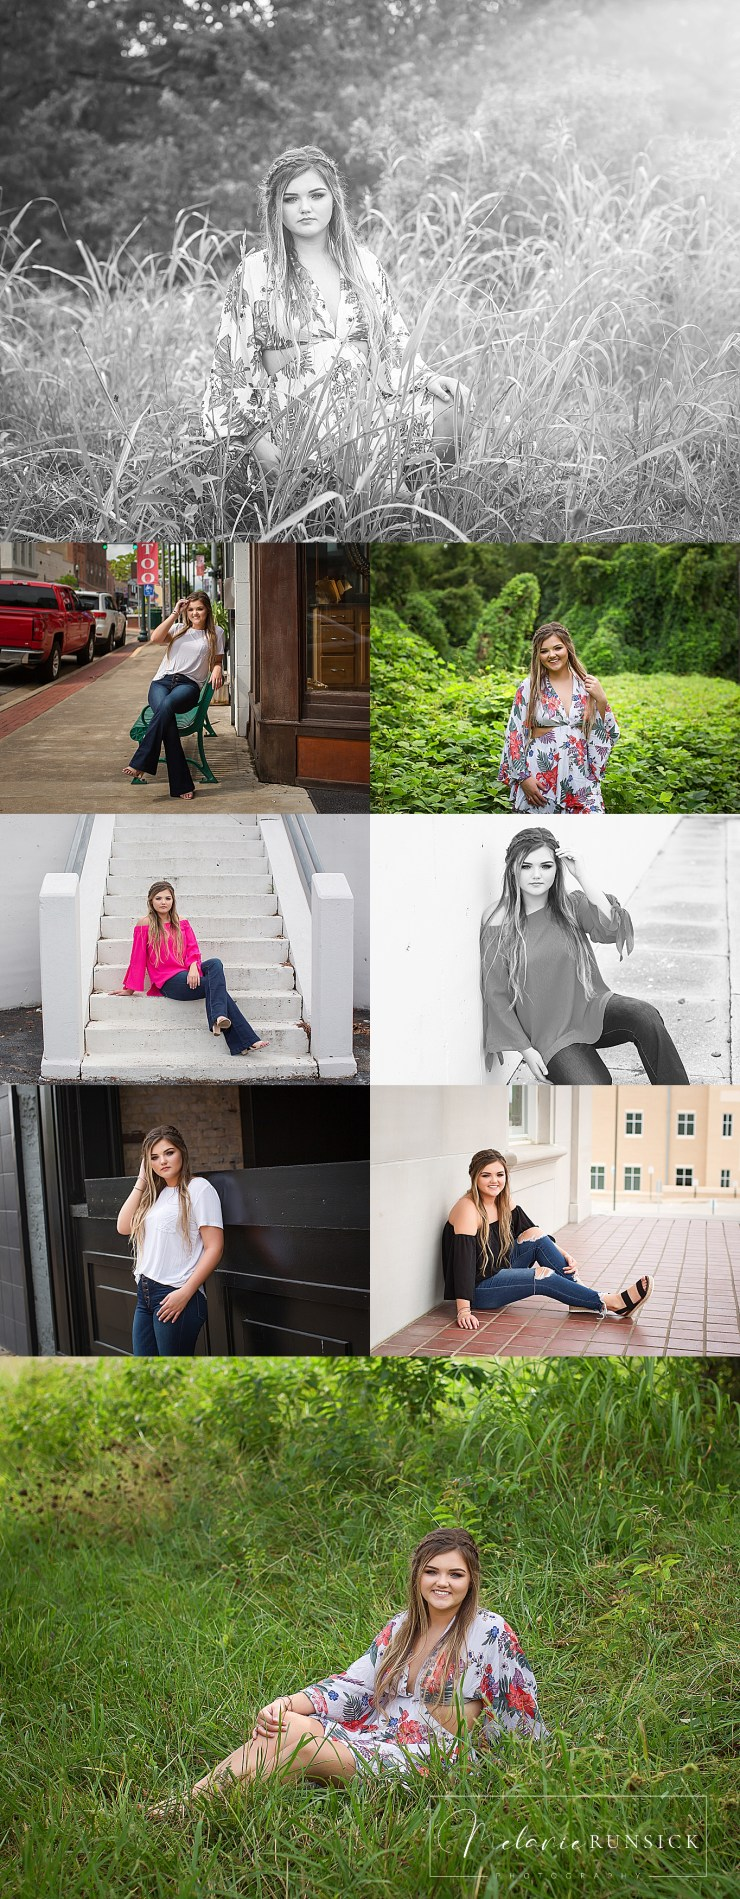 Tuckerman Senior Photographer Melanie Runsick Photography Northeast Ar senior Photographer